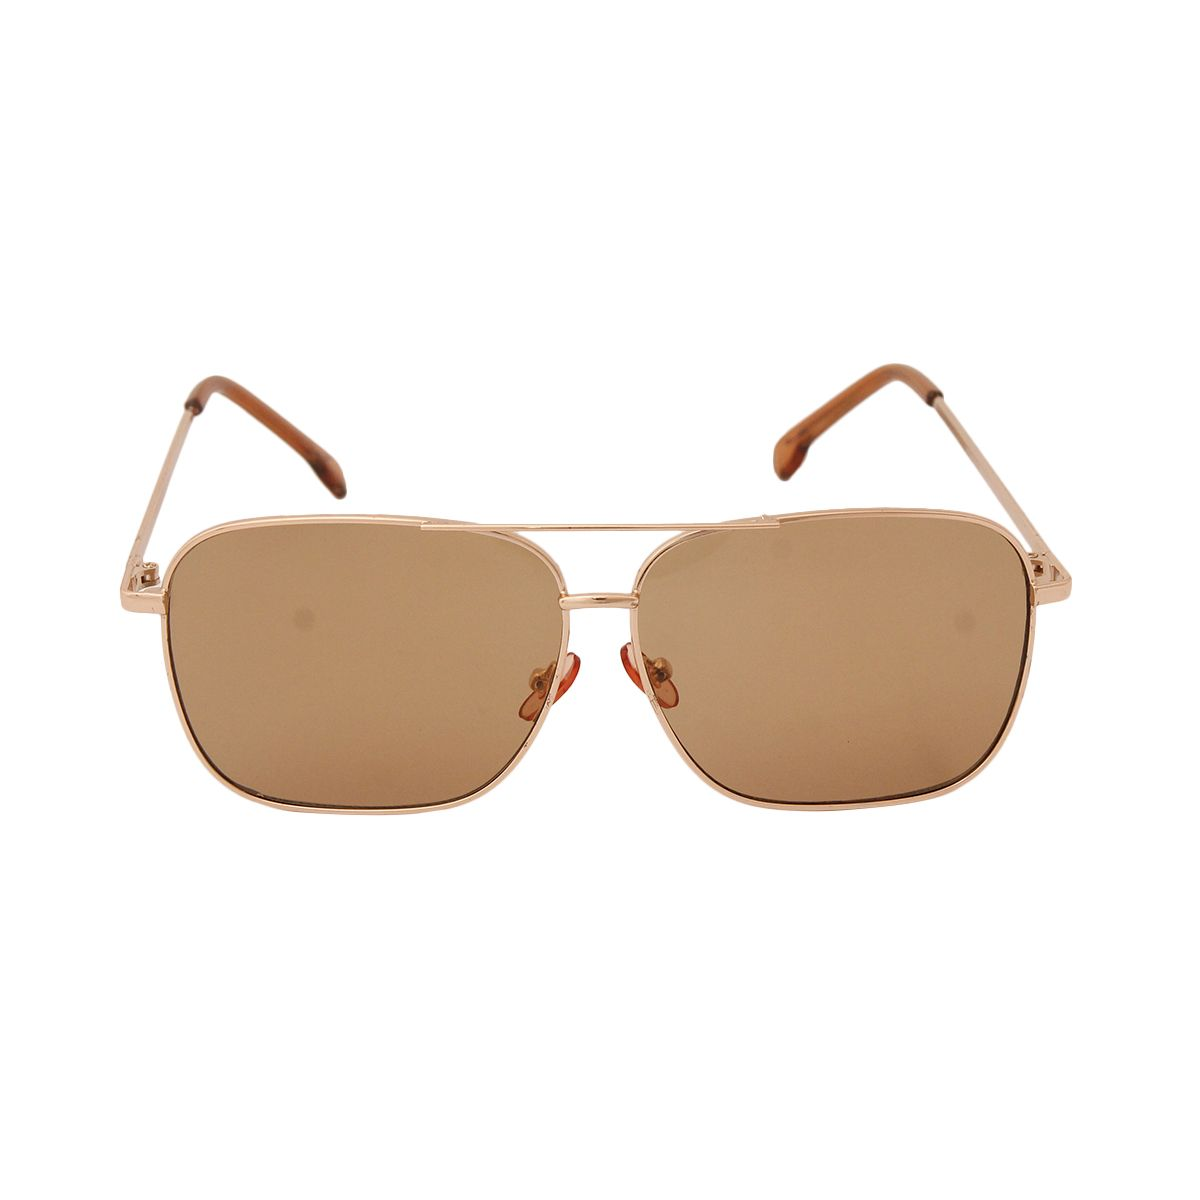 Brown and Gold Square Aviators